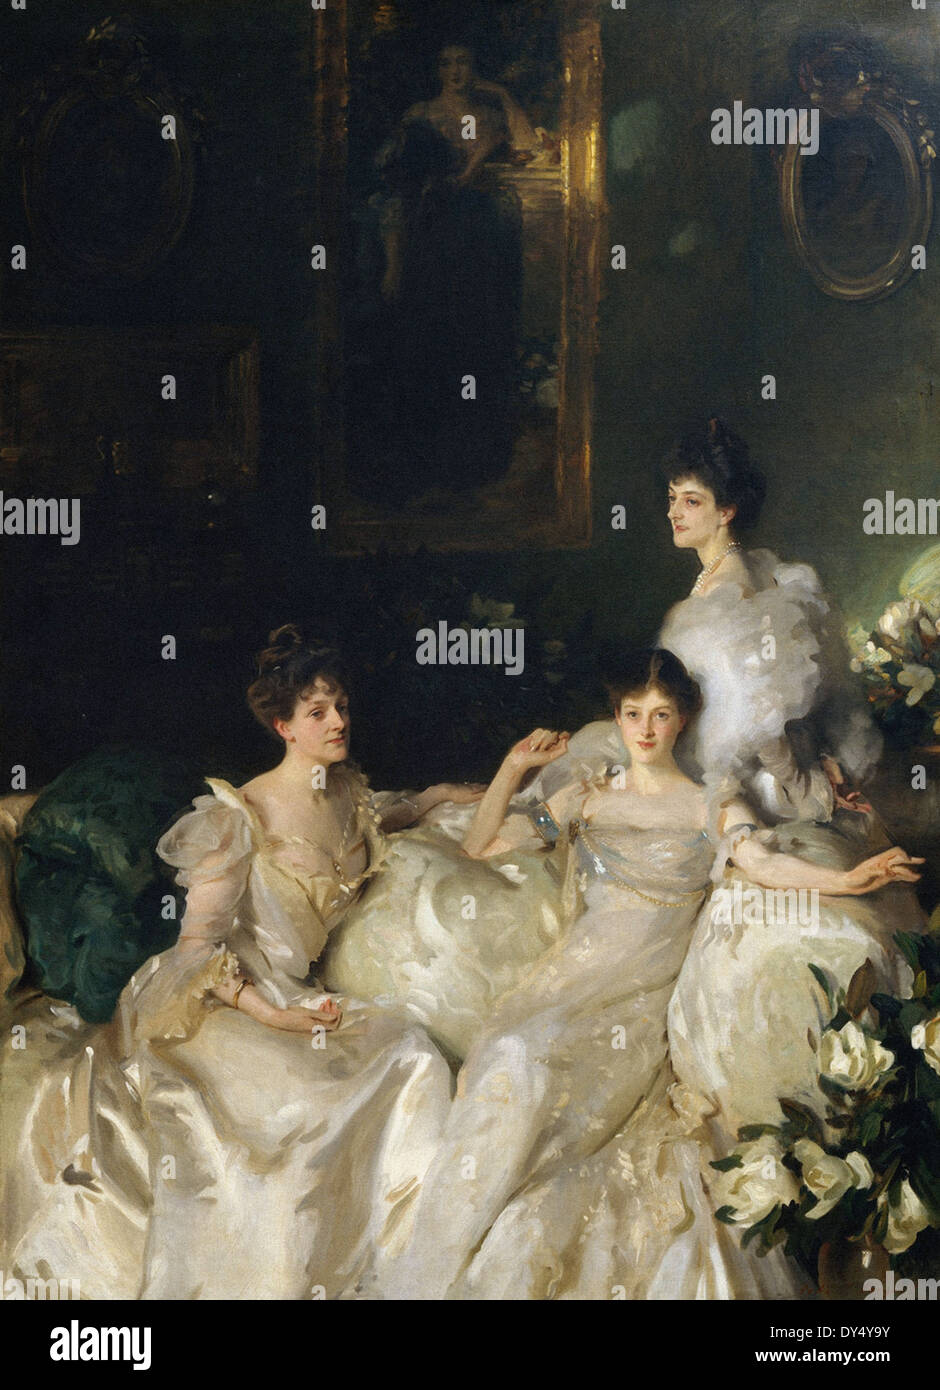 John Singer Sargent The Wyndham Sisters - Lady Elcho, Mrs. Adeane, and Mrs. Tennant - Stock Image